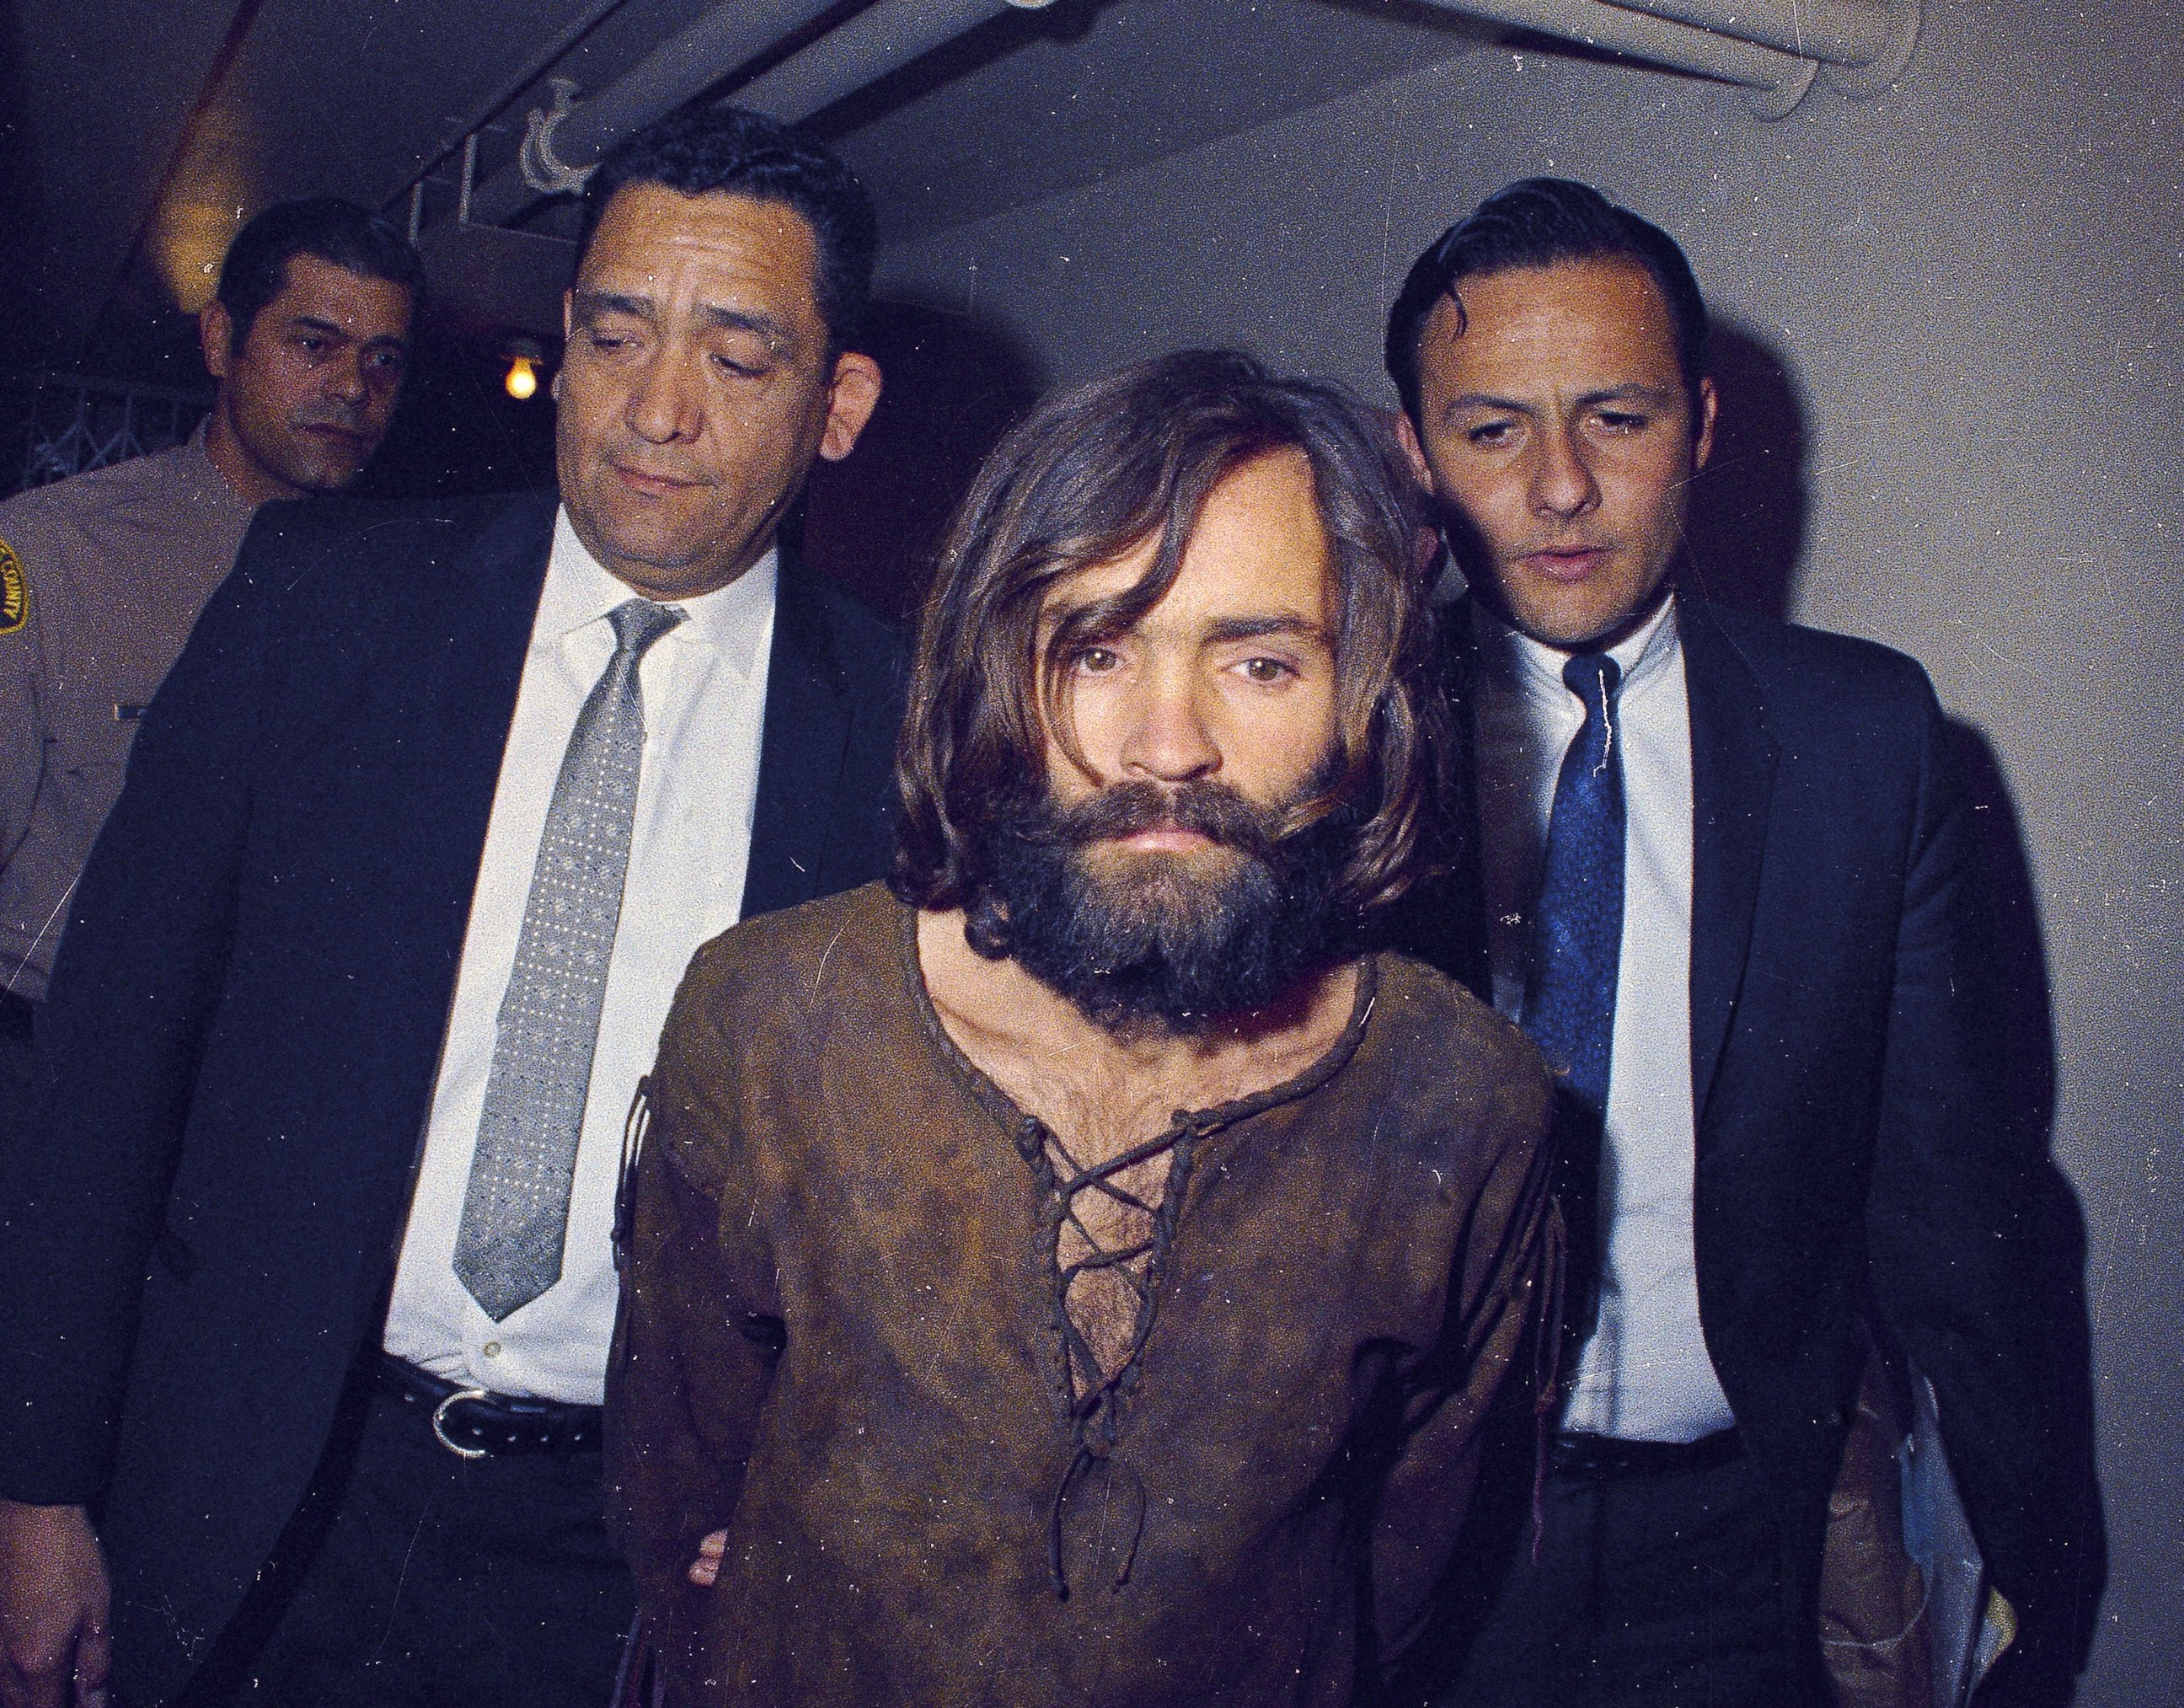 https://i2.wp.com/abcnews.go.com/images/US/ap_charles_manson_jc_160427.jpg